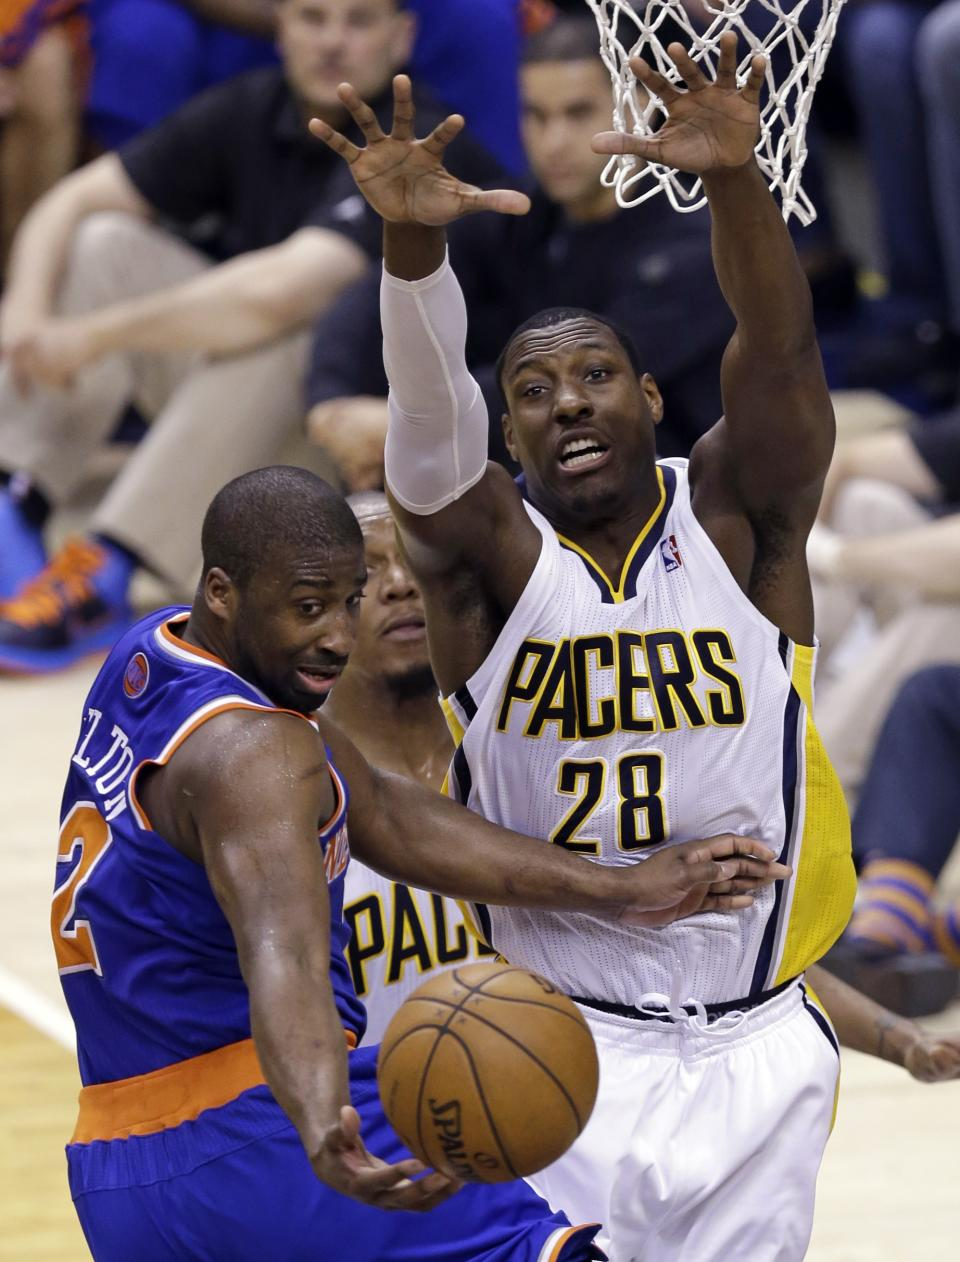 Indiana Pacers center Ian Mahinmi (28) forces New York Knicks guard Raymond Felton to pass on a drive to the basket during the first half of Game 4 of the Eastern Conference semifinal NBA basketball playoff series, in Indianapolis on Tuesday, May 14, 2013. (AP Photo/Michael Conroy)